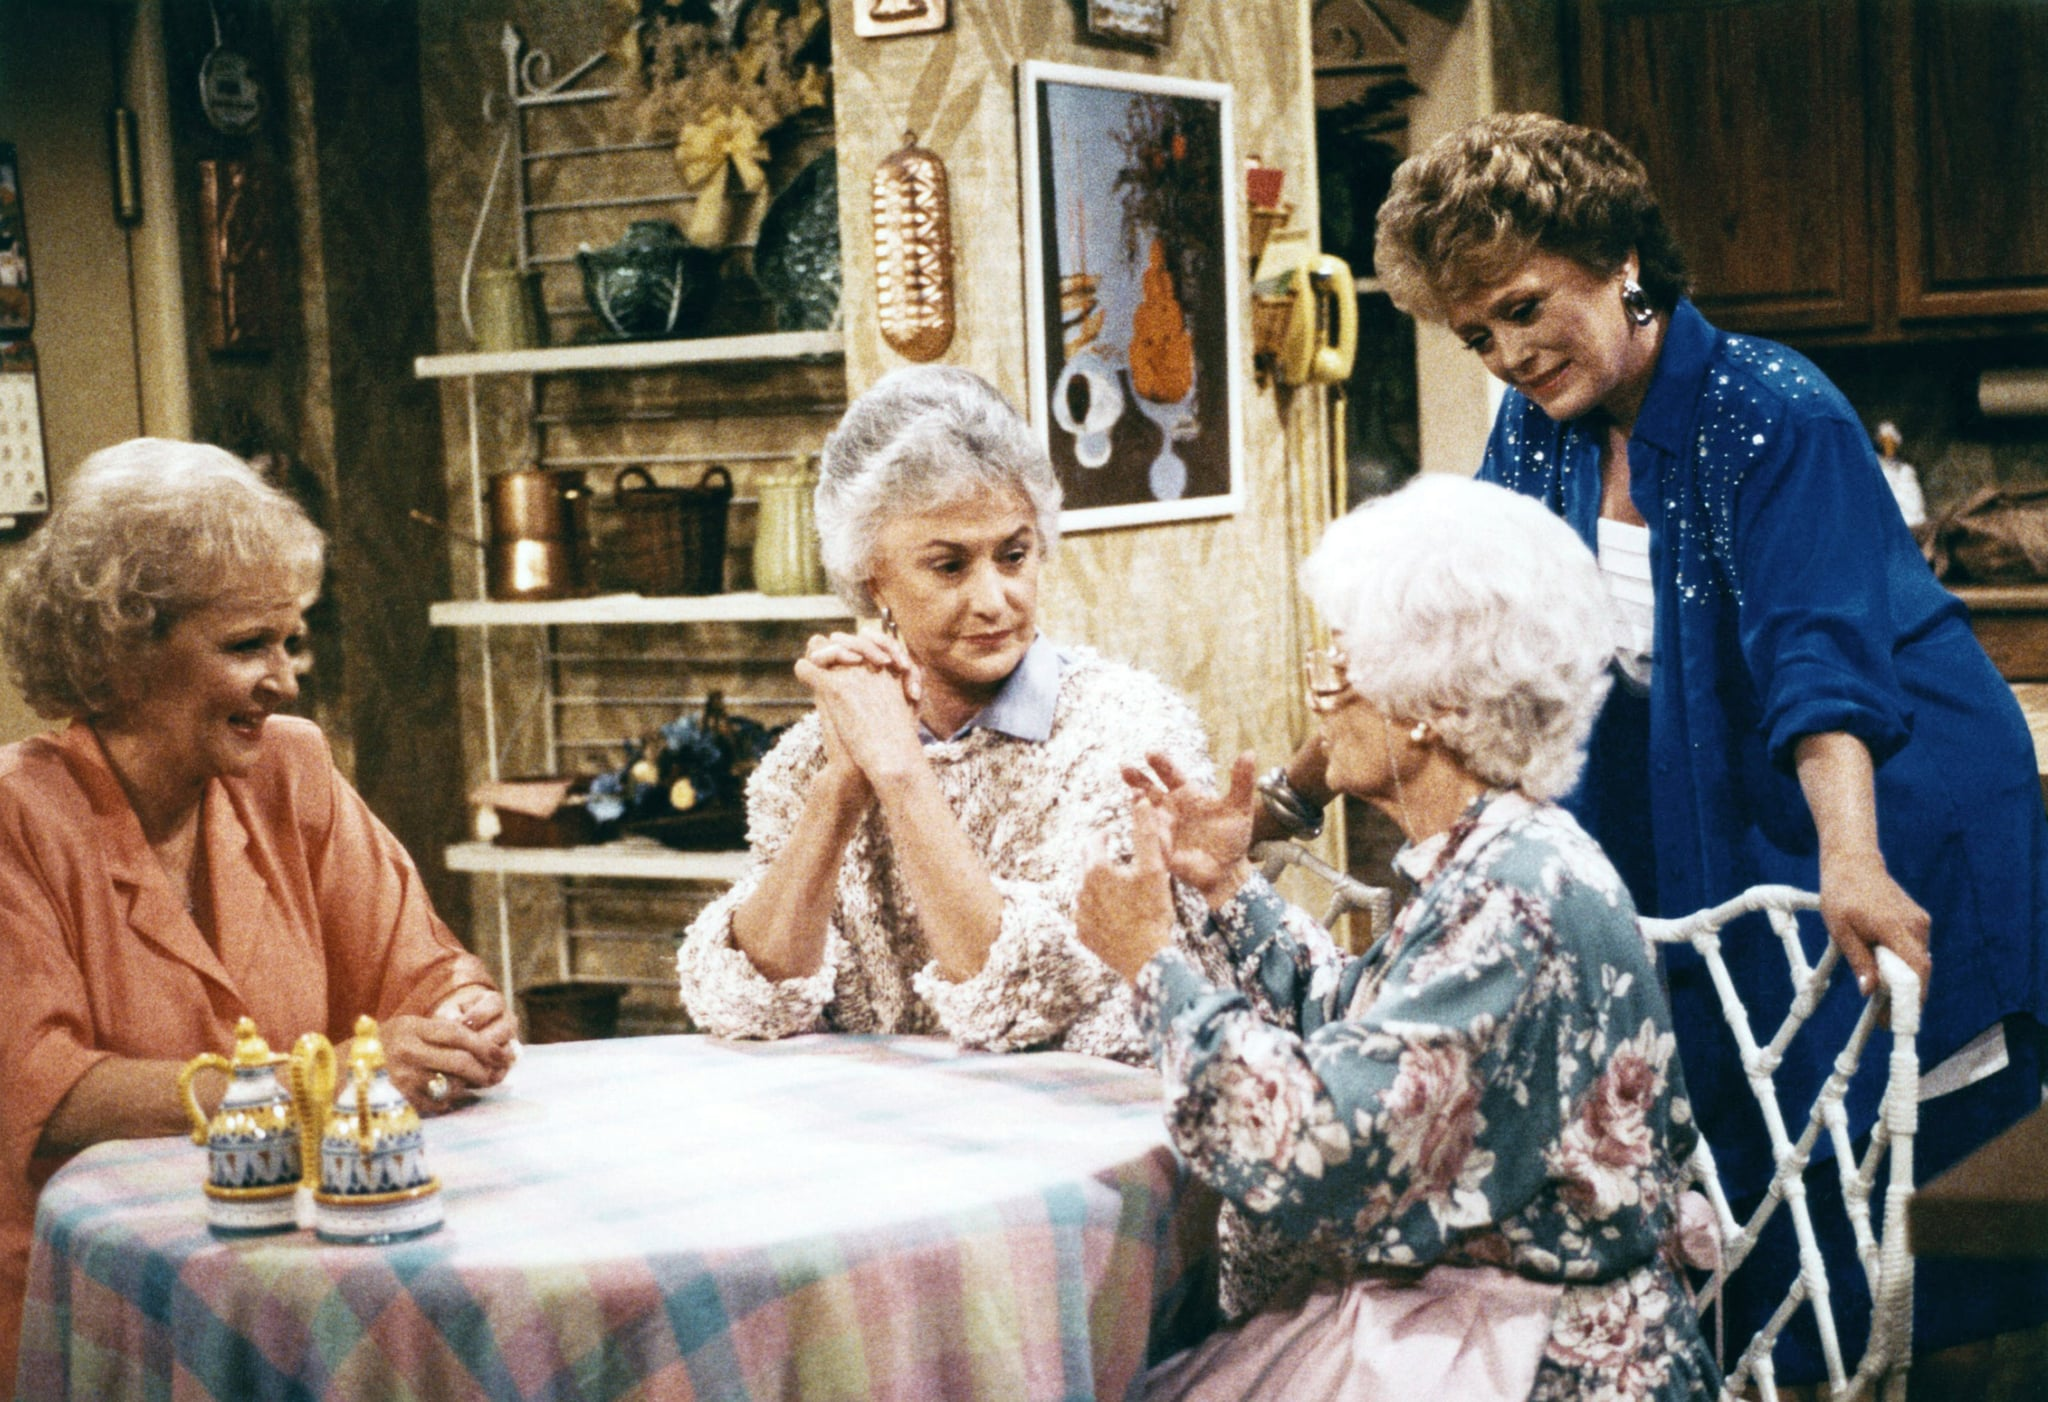 THE GOLDEN GIRLS, (from left): Betty White, Bea Arthur, Estelle Getty, Rue McClanahan, 1985-92.  Touchstone Television / Courtesy: Everett Collection